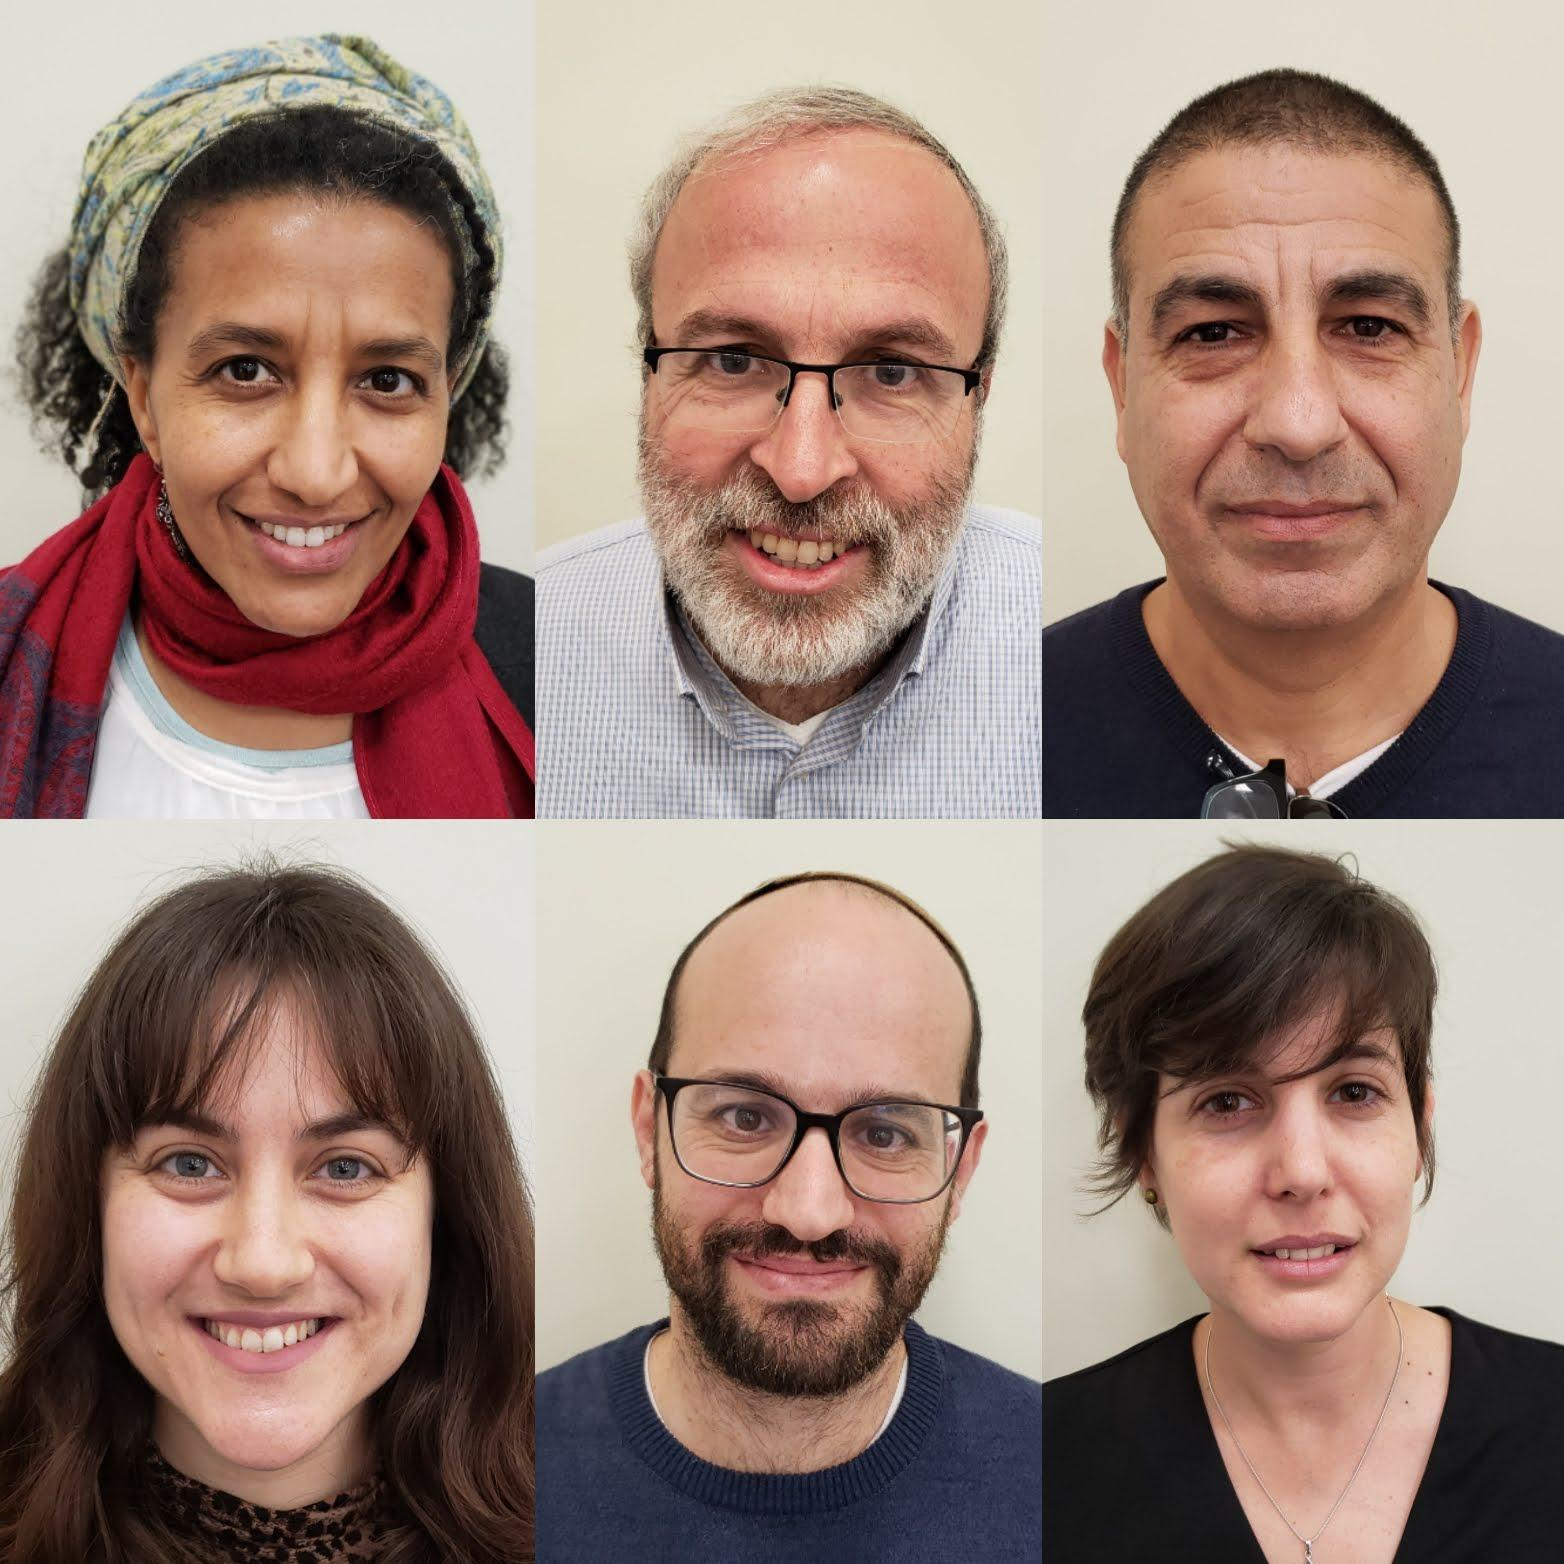 The multicultural faces of MAKOM (Courtesy: JNF-USA)